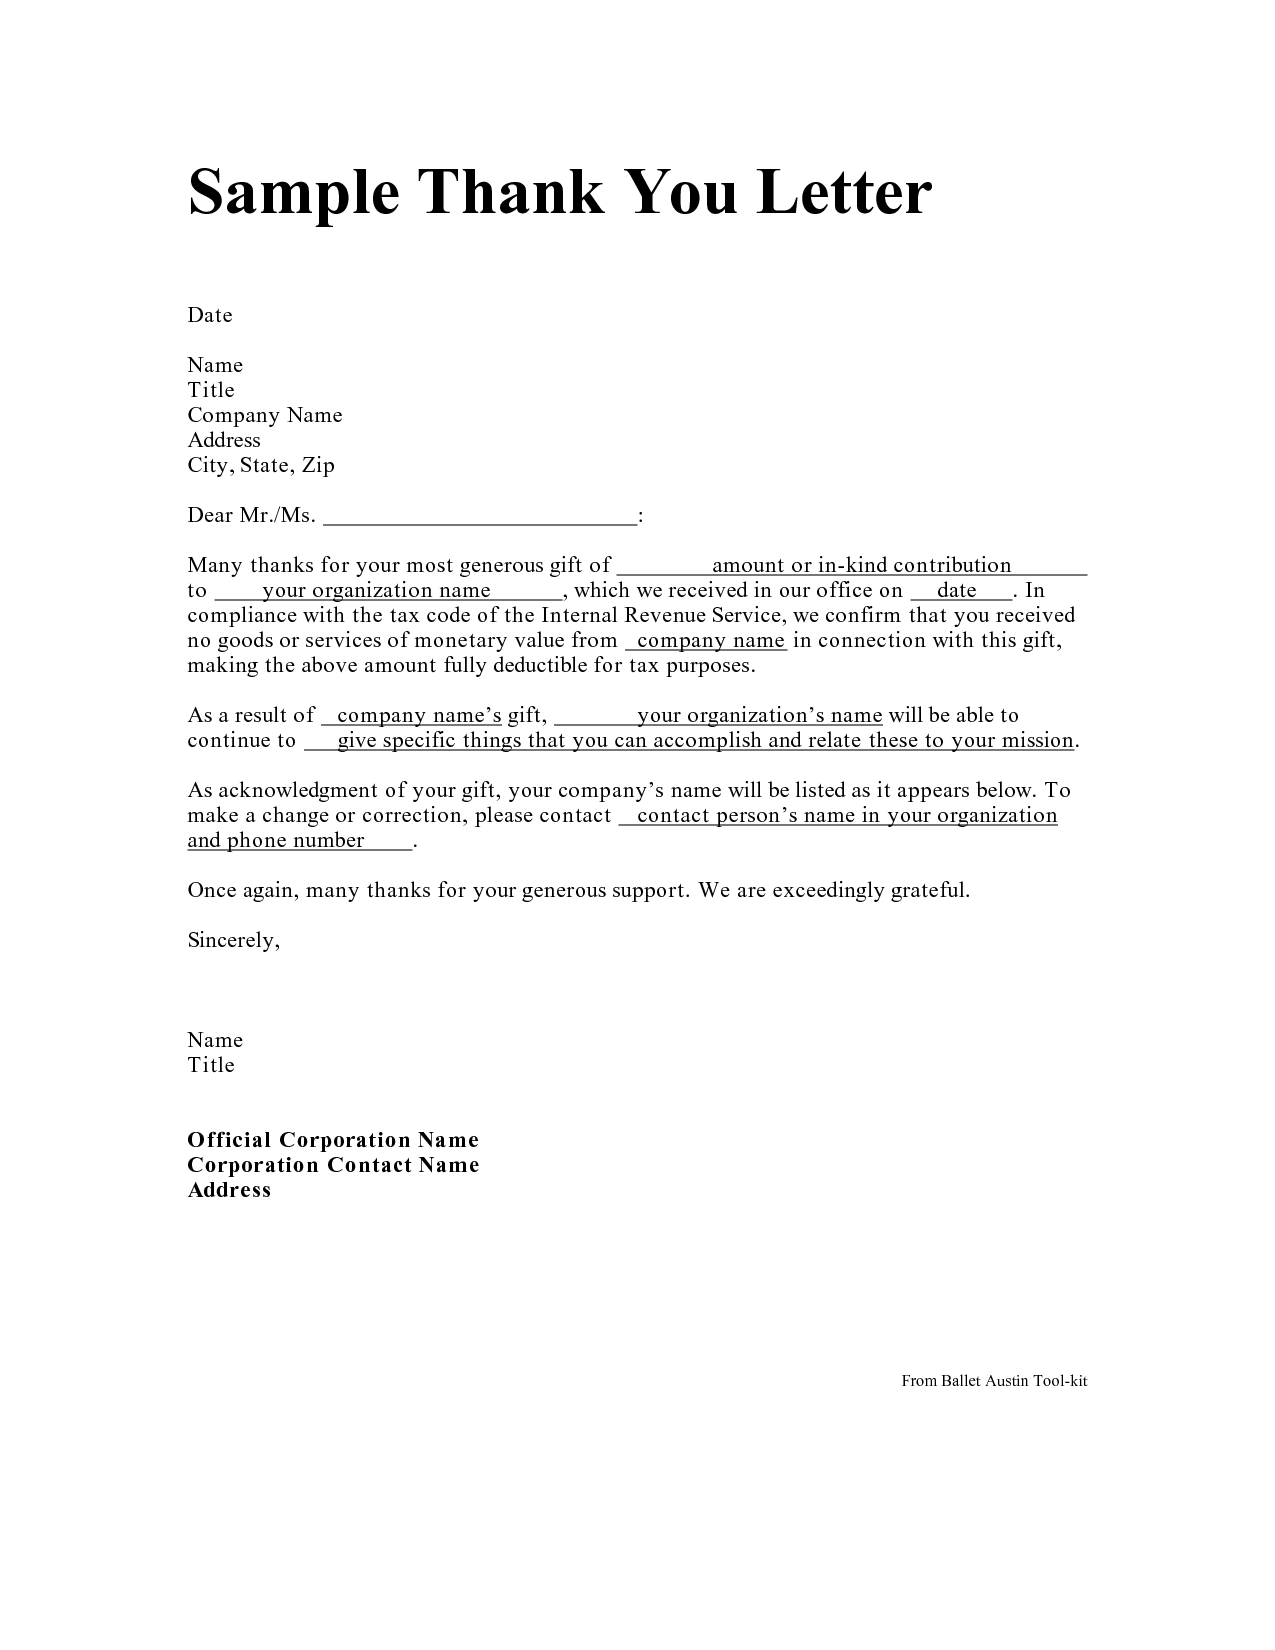 Scholarship thank you letter template collection letter template scholarship thank you letter template personal thank you letter personal thank you letter samples expocarfo